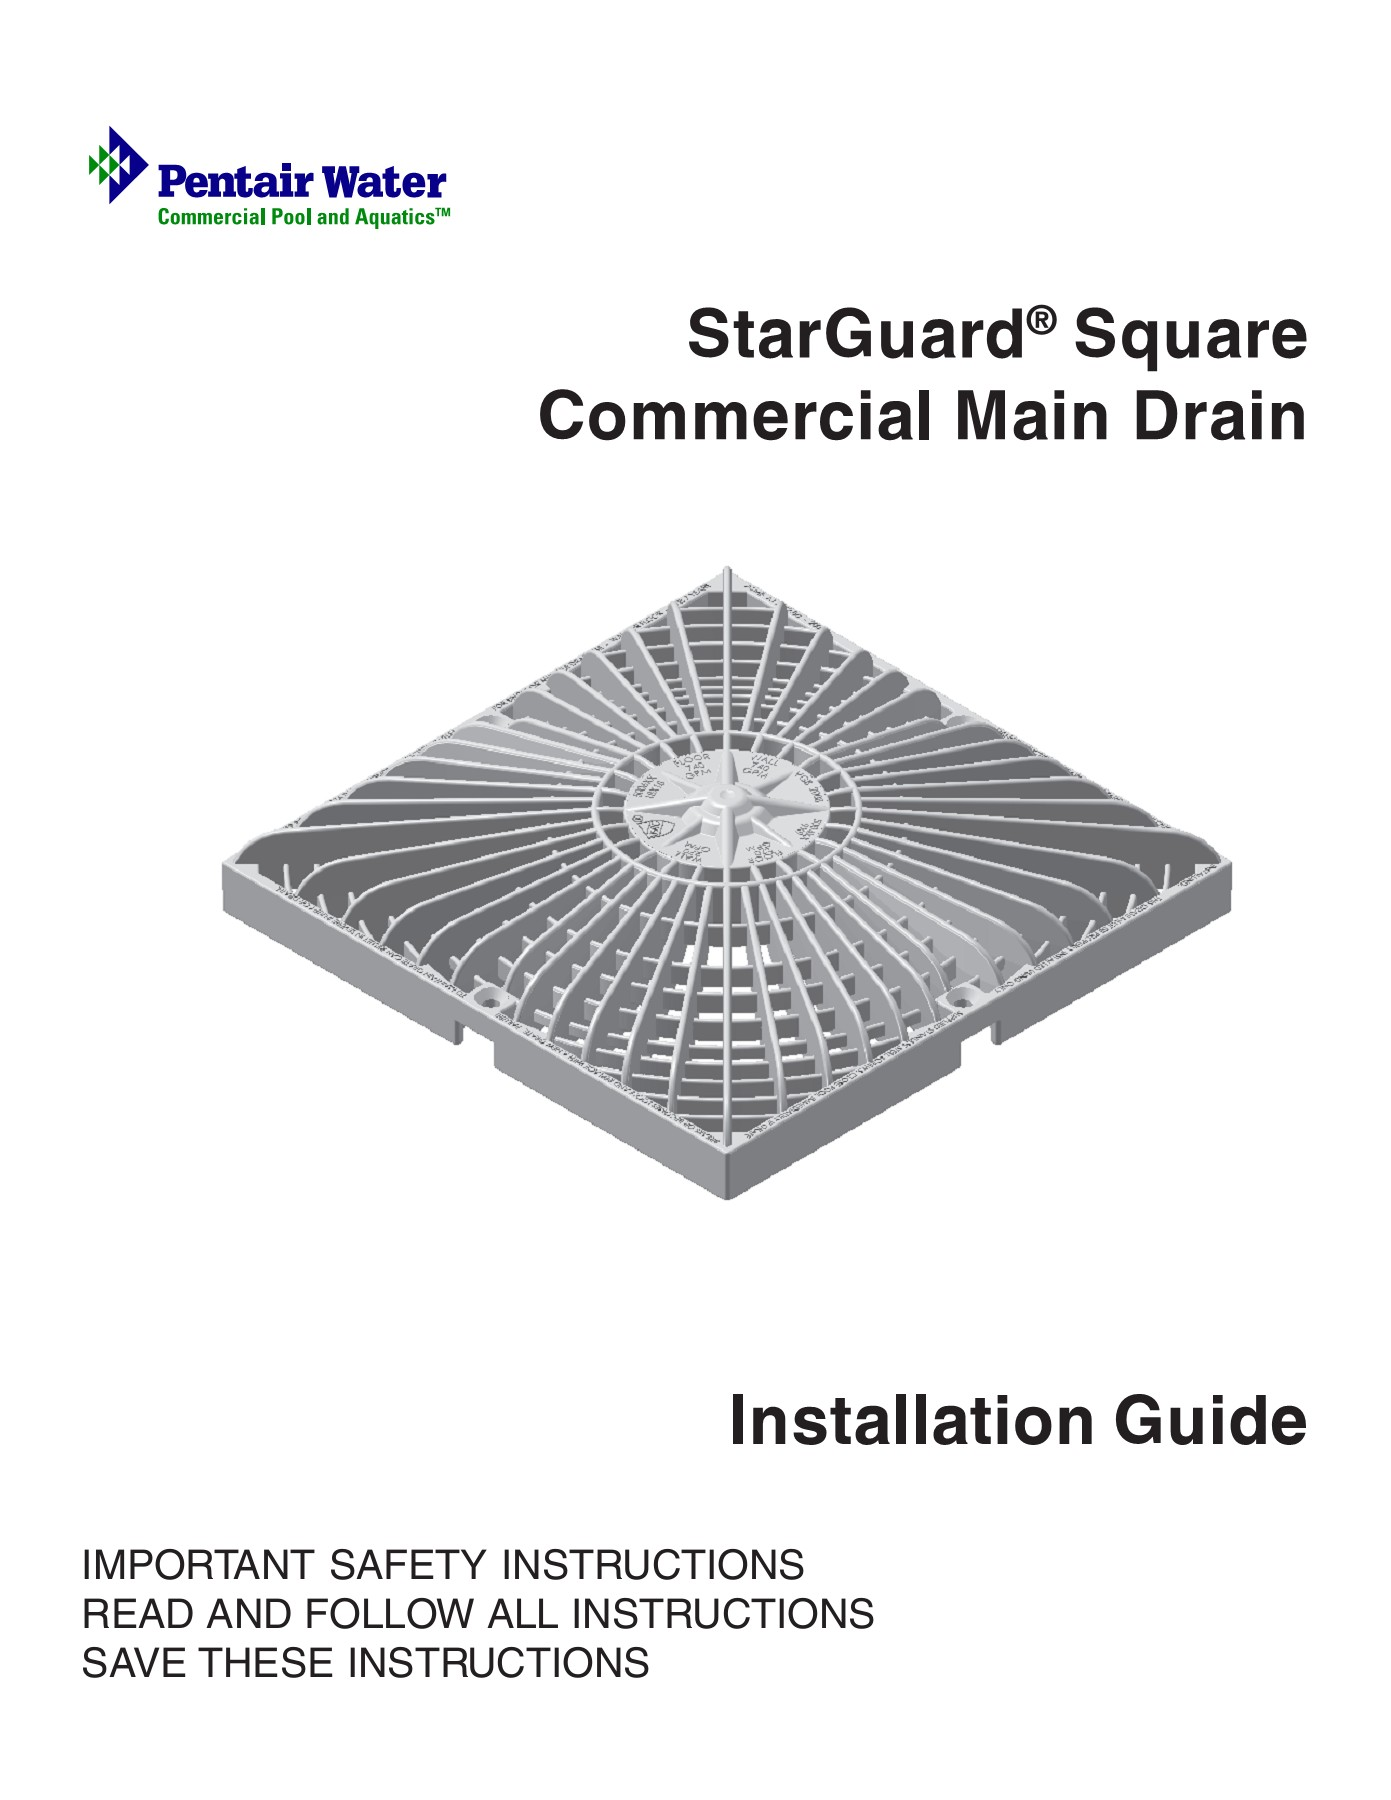 StarGuard Square Commercial Main Drain - Pentair Pool Pages